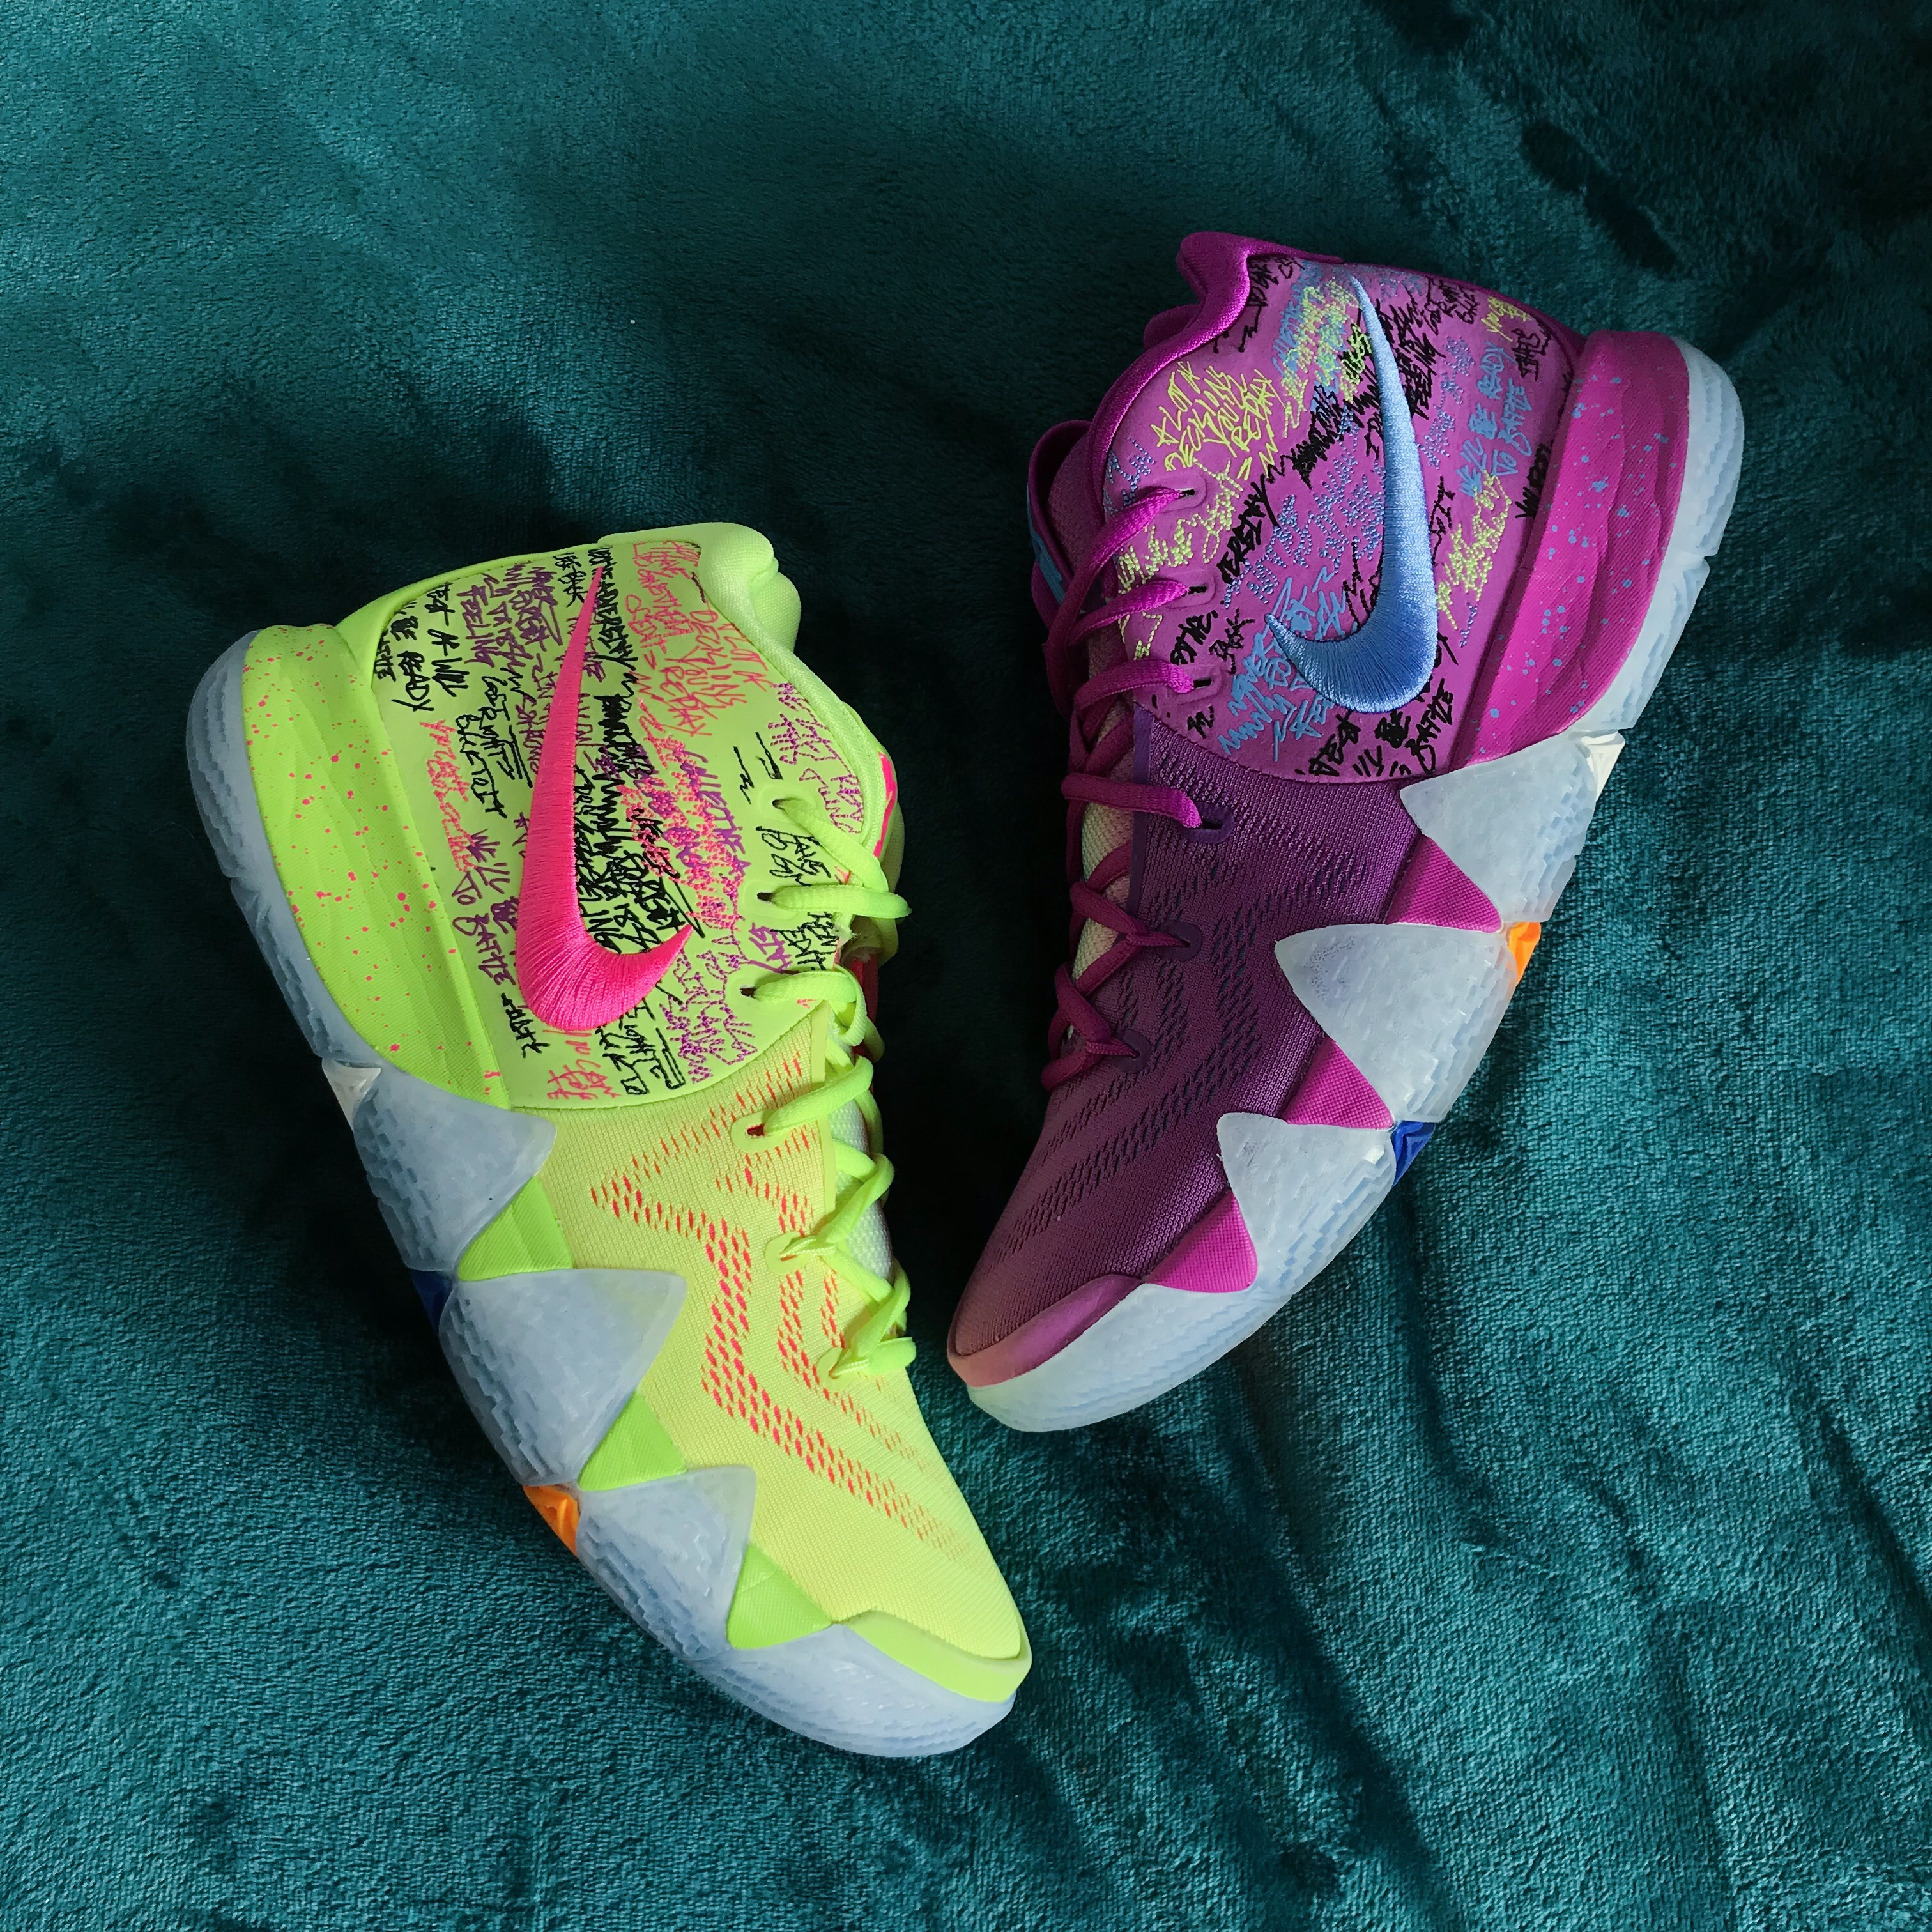 newest ed318 32555 Nike Kyrie 4 'Confetti' basketball shoes. Kyrie... - Depop